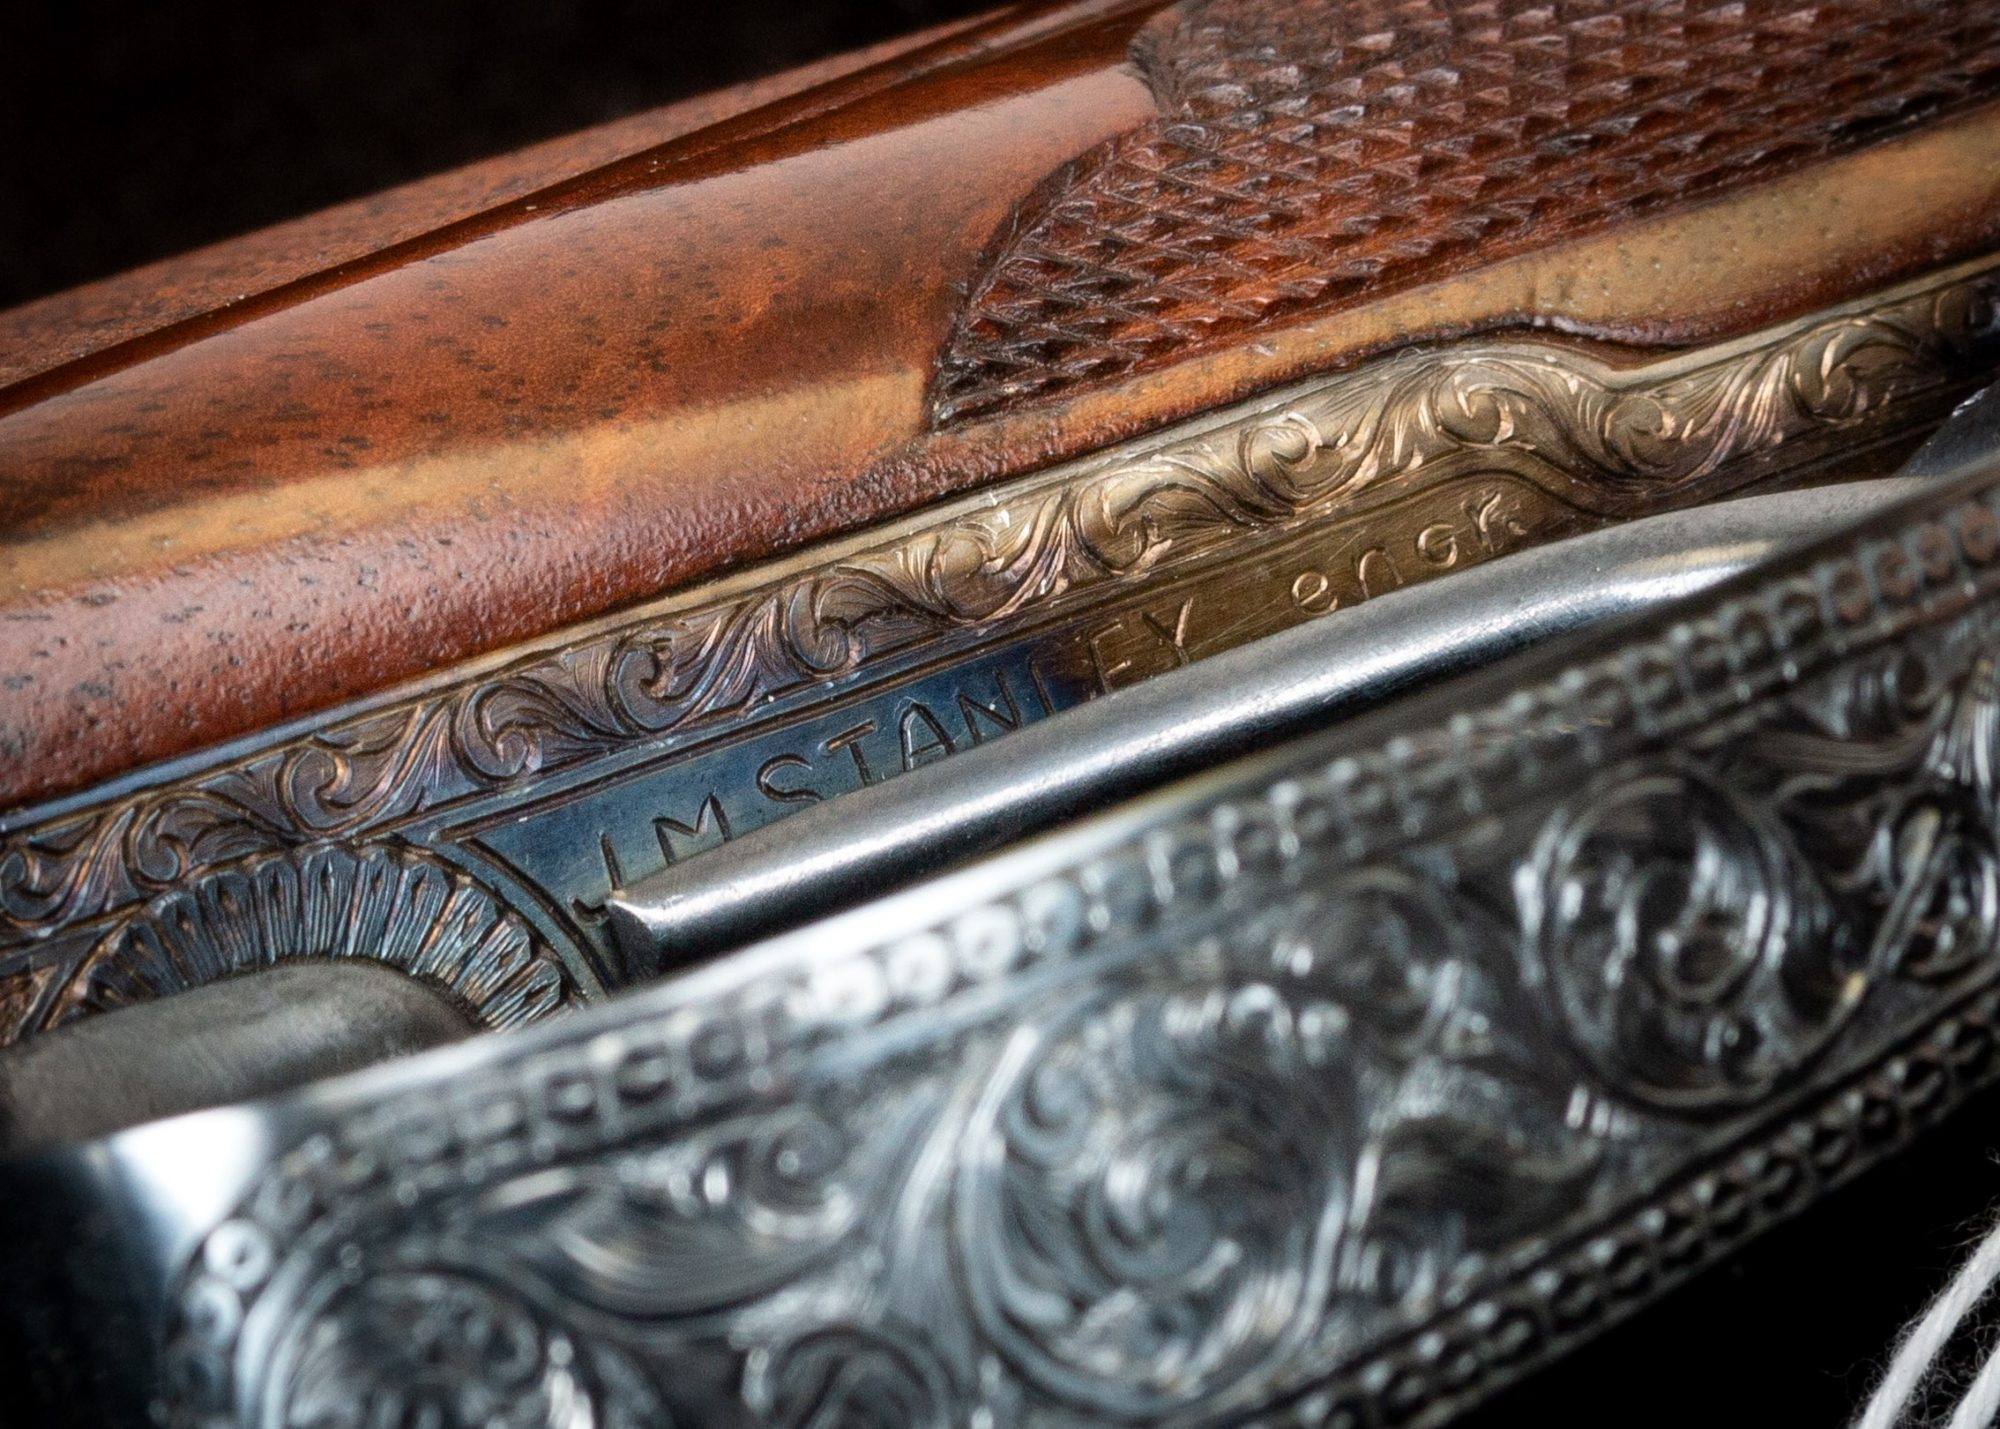 Photo of pre-owned Parker VHE 20 gauge shotgun, upgraded by previous owner to A1 Special. Features color case hardening and other metal finishes by Turnbull Restoration